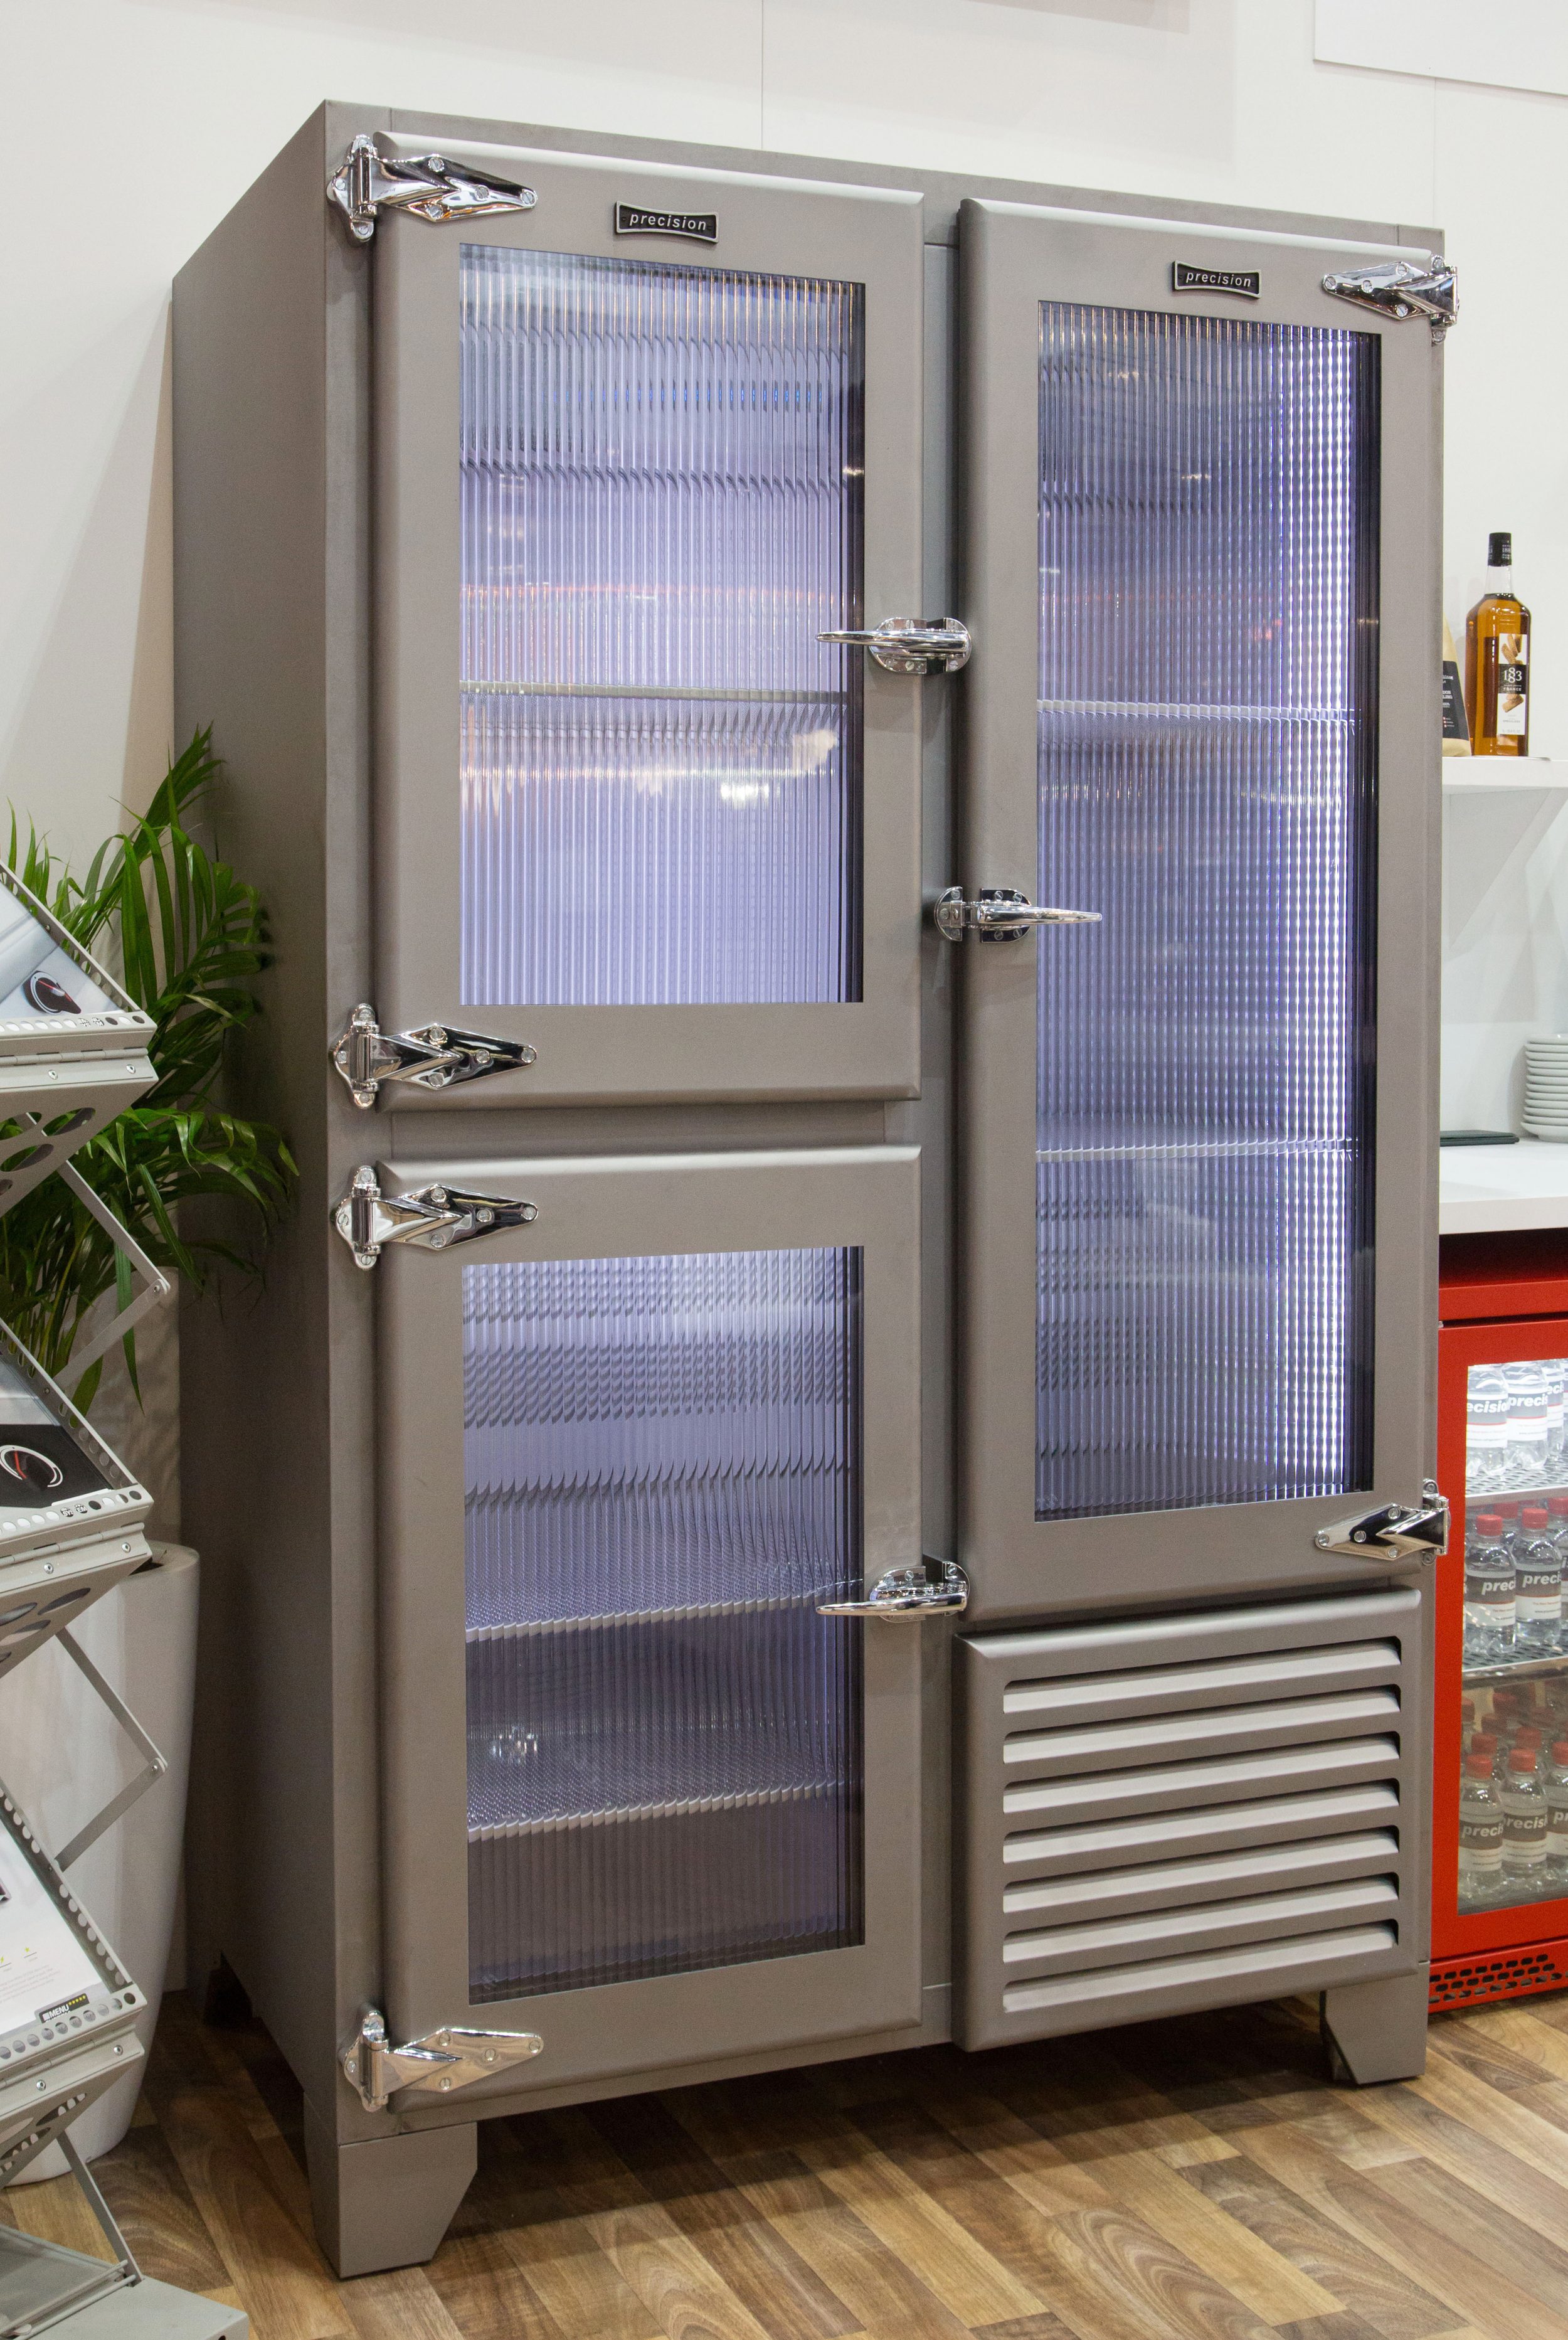 Retro Fridge With Ribbed Glass Doors